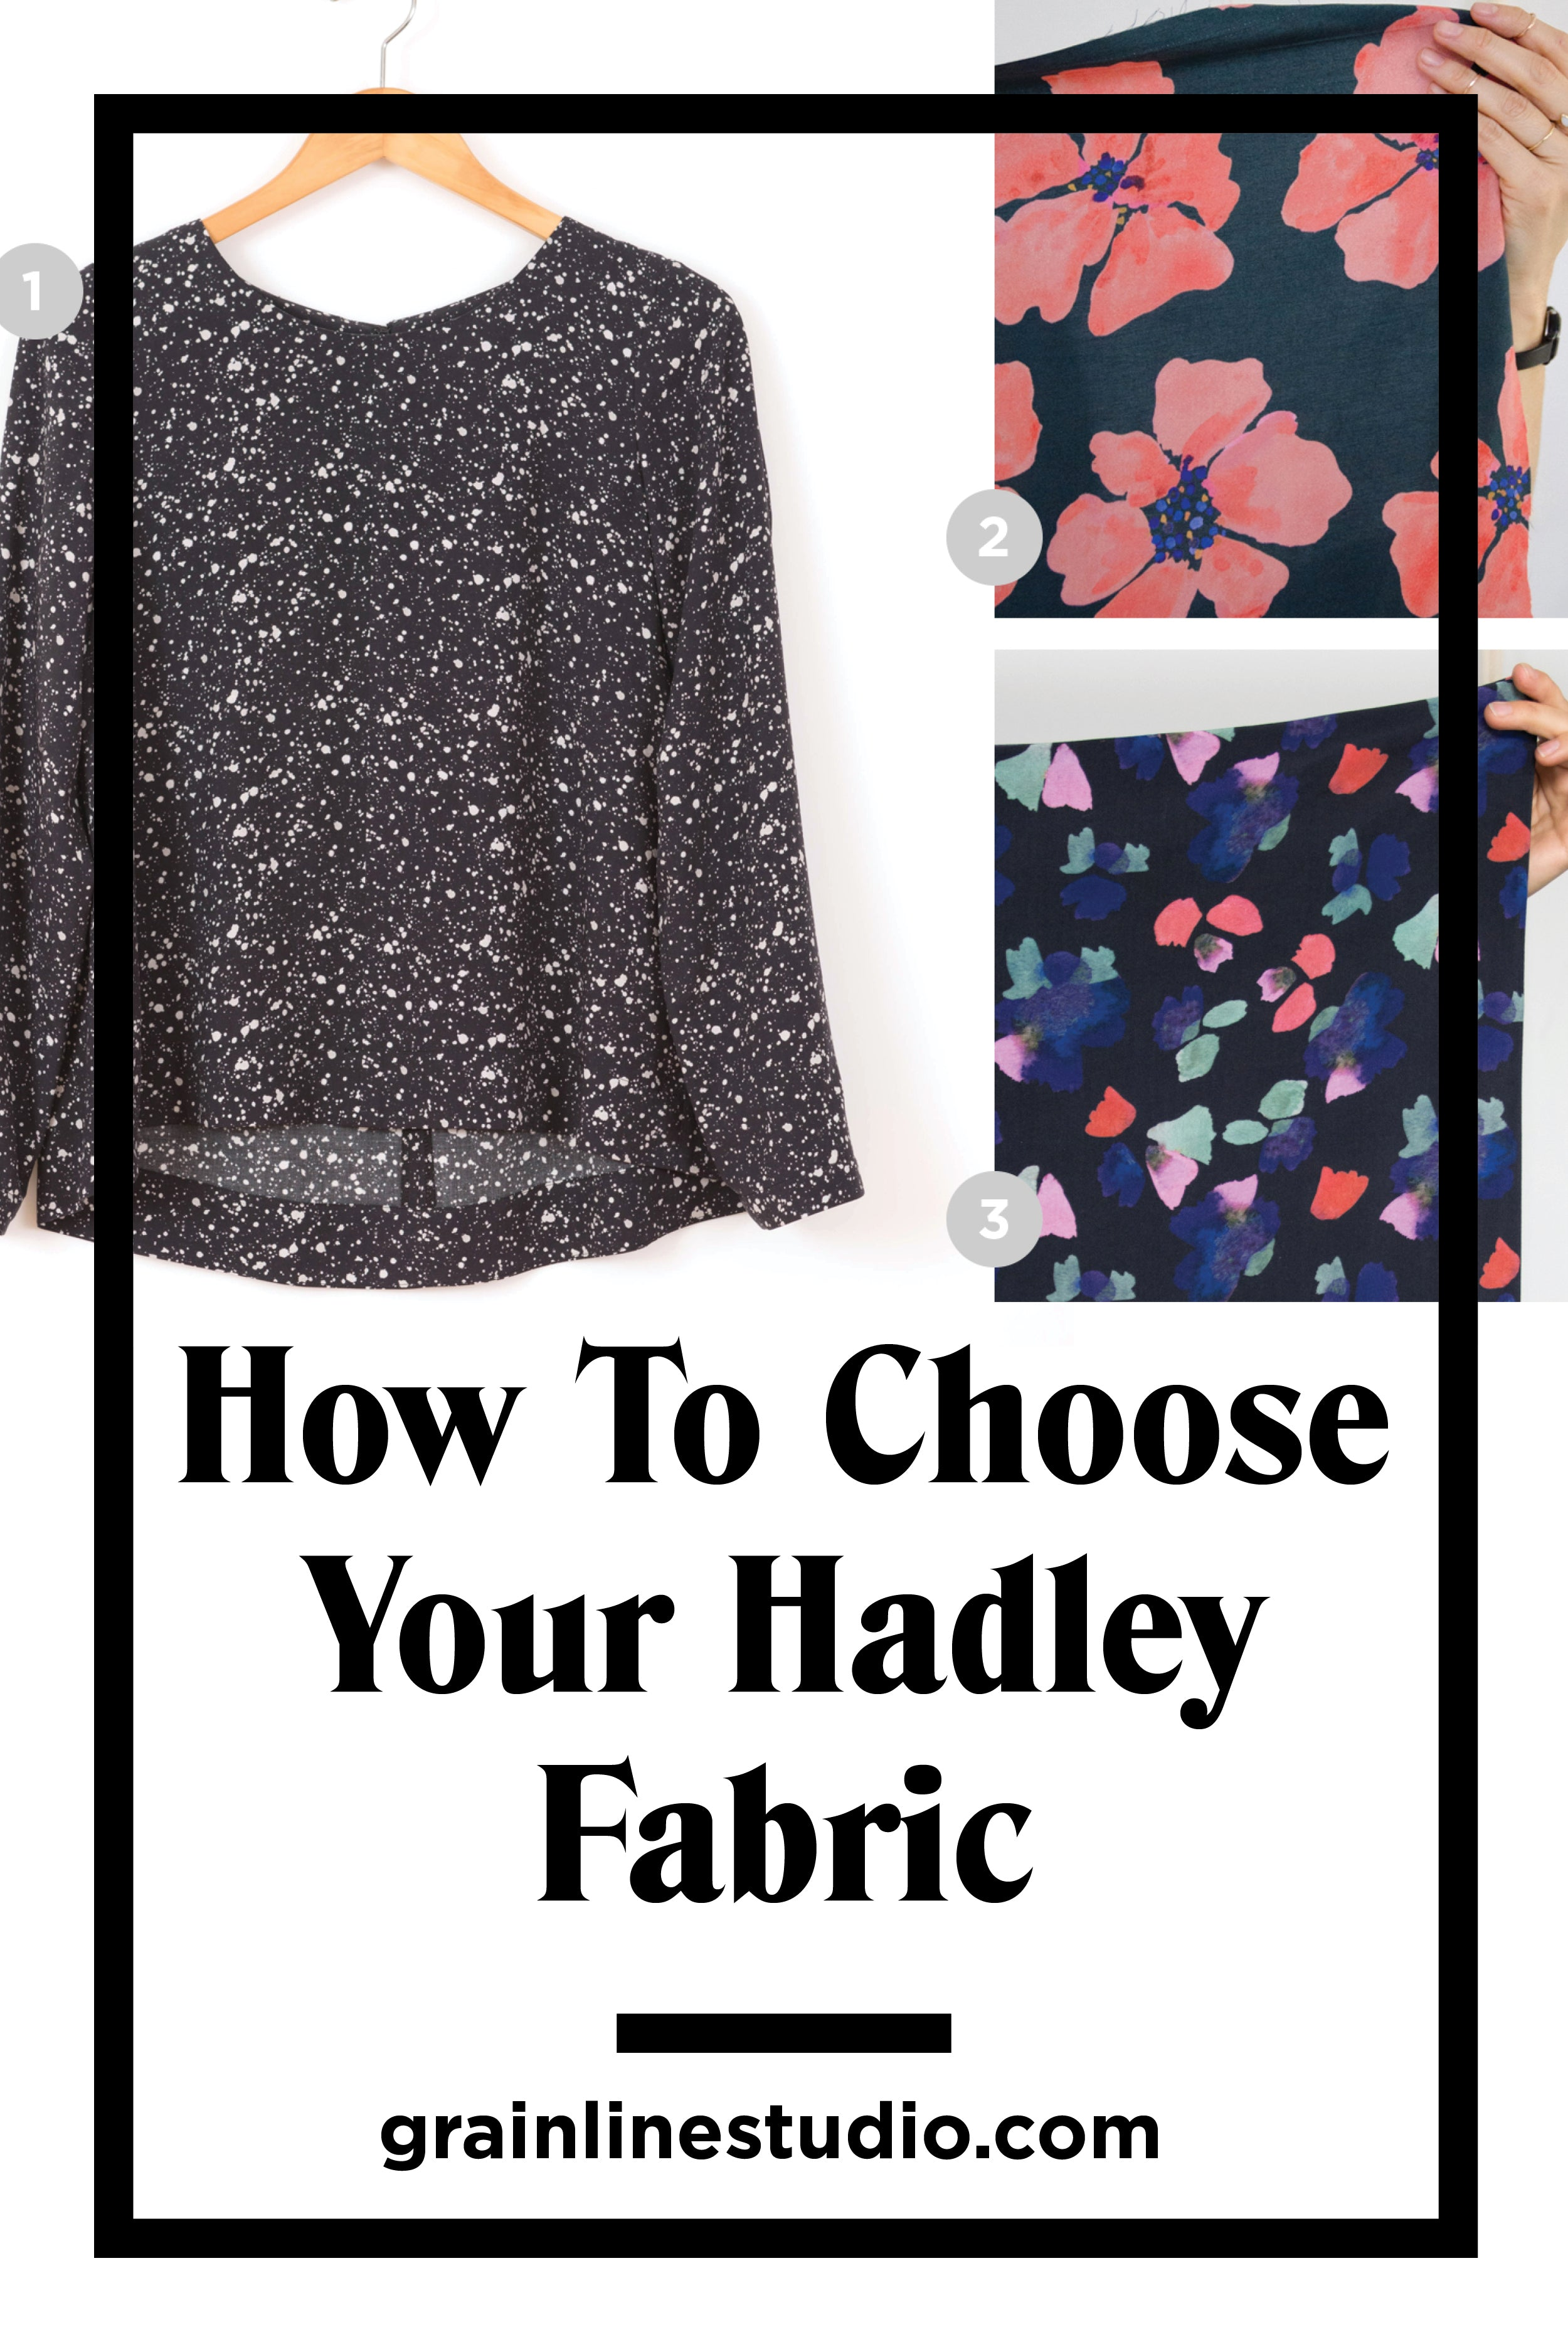 How to Choose your Hadley Fabric